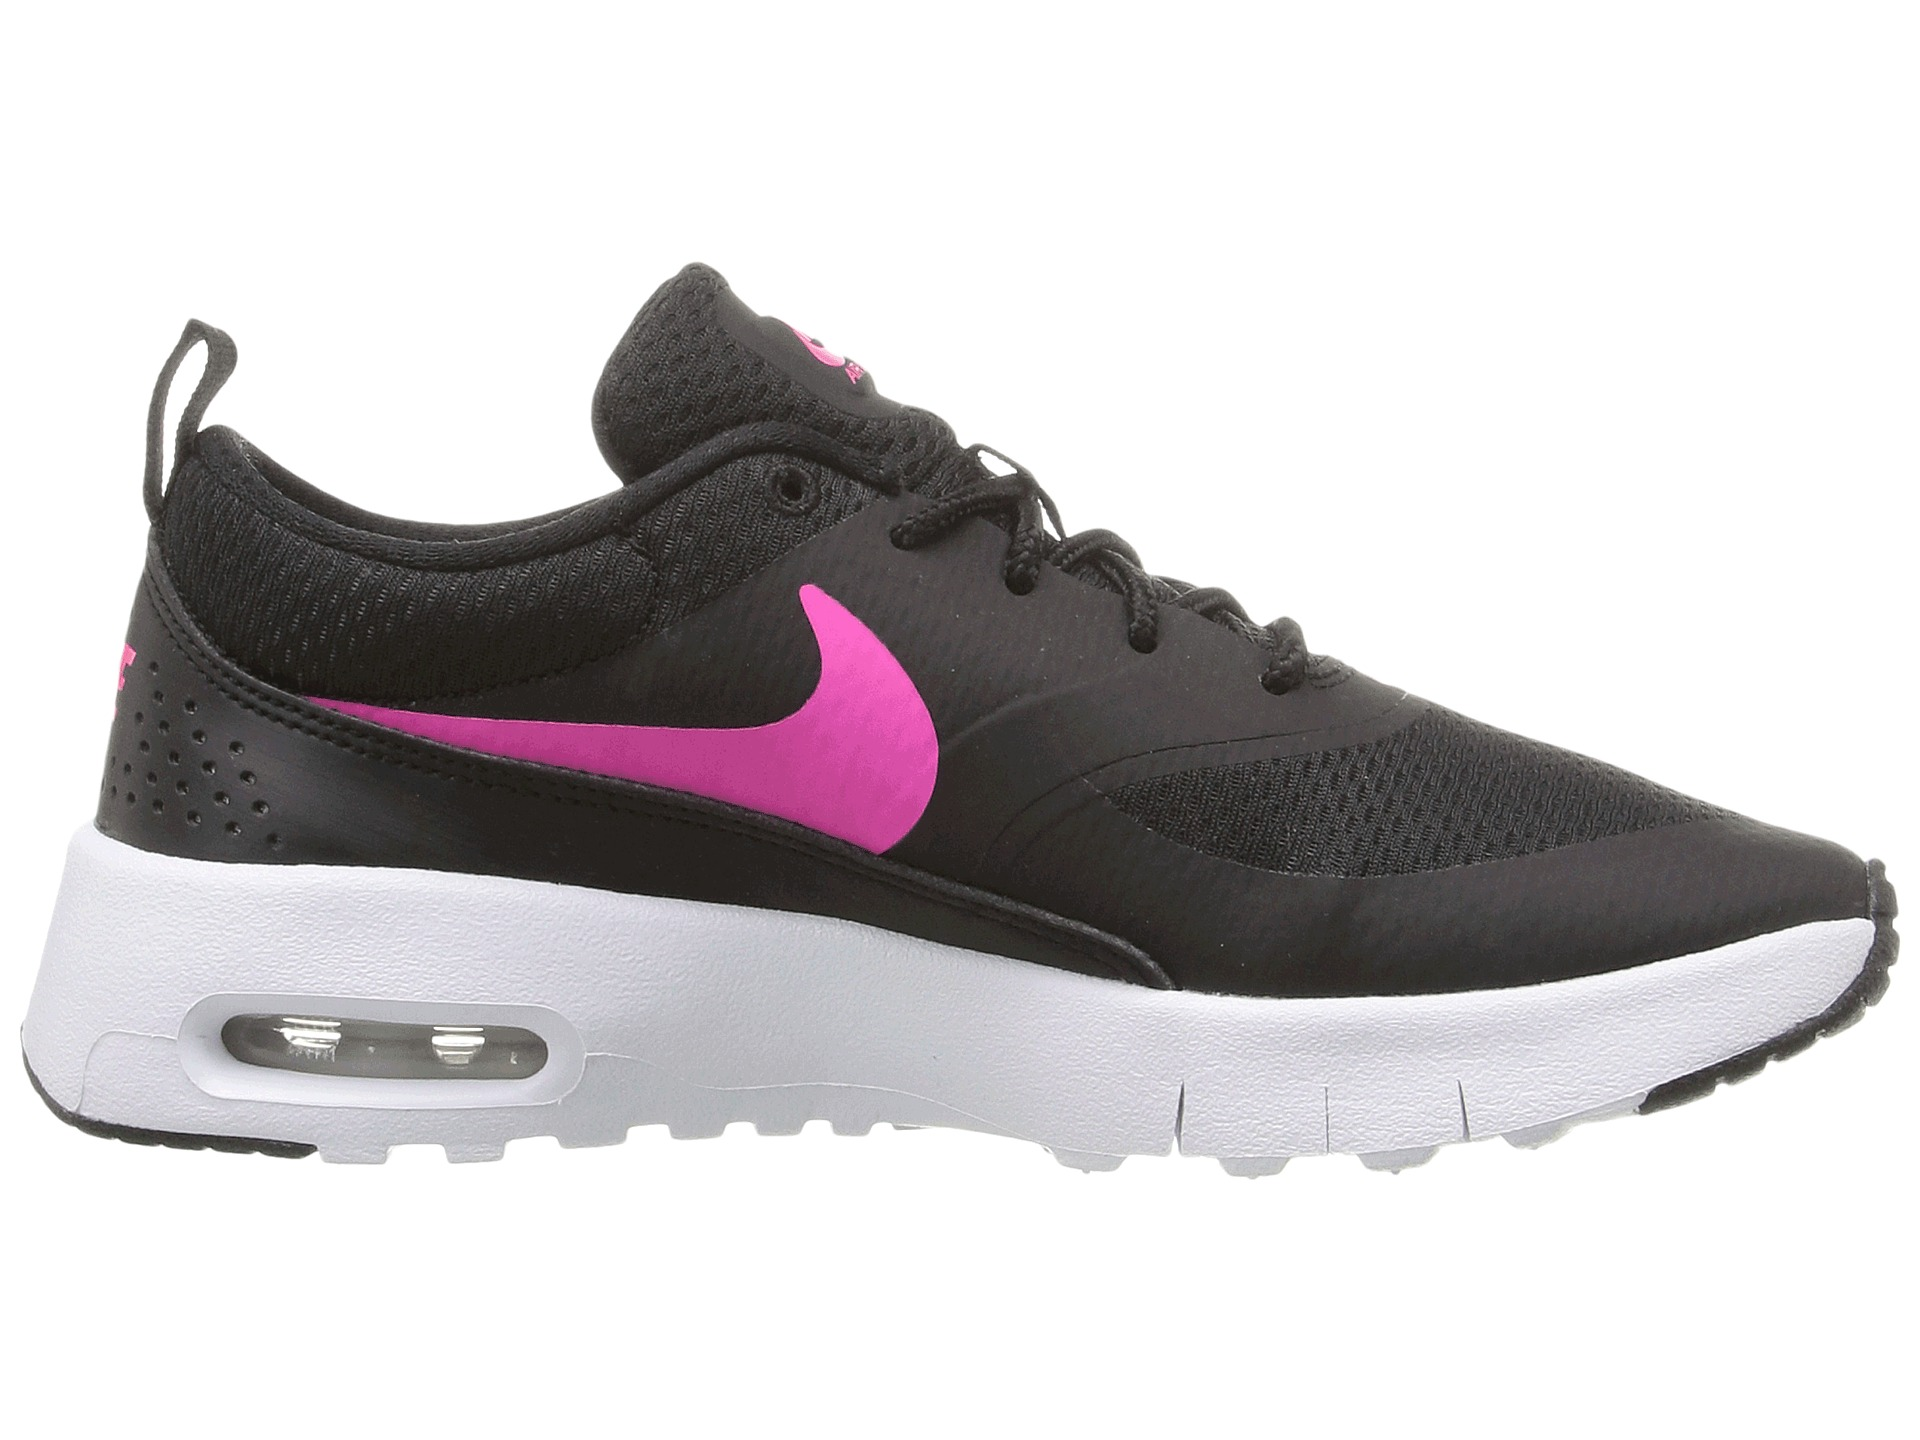 separation shoes c15b8 2000d Nike Air Max Zappos